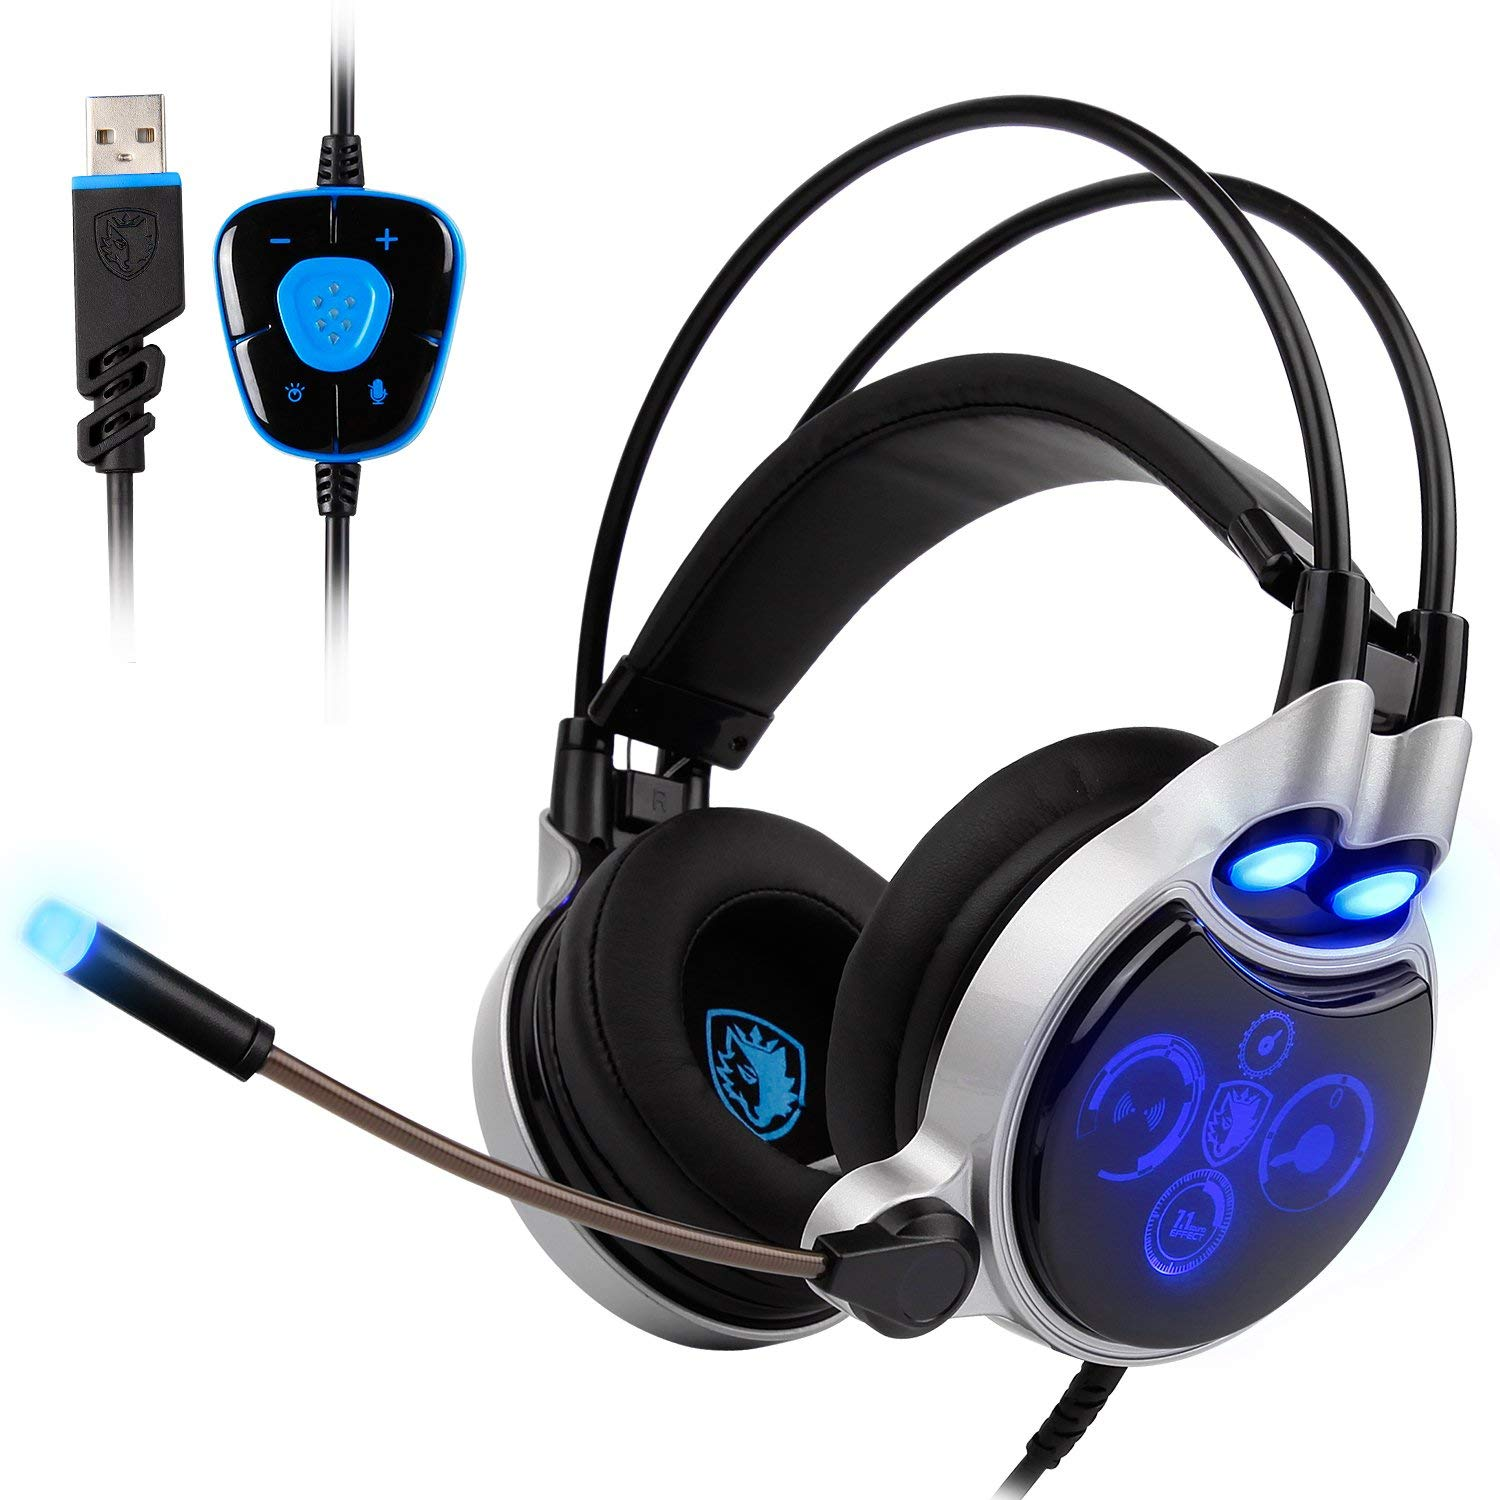 PC Gaming Headset Stereo 7.1 Surround Sound USB Wired Headphones Flexible with Mic,Volume Control,LED Lighting,Noise Cancelling